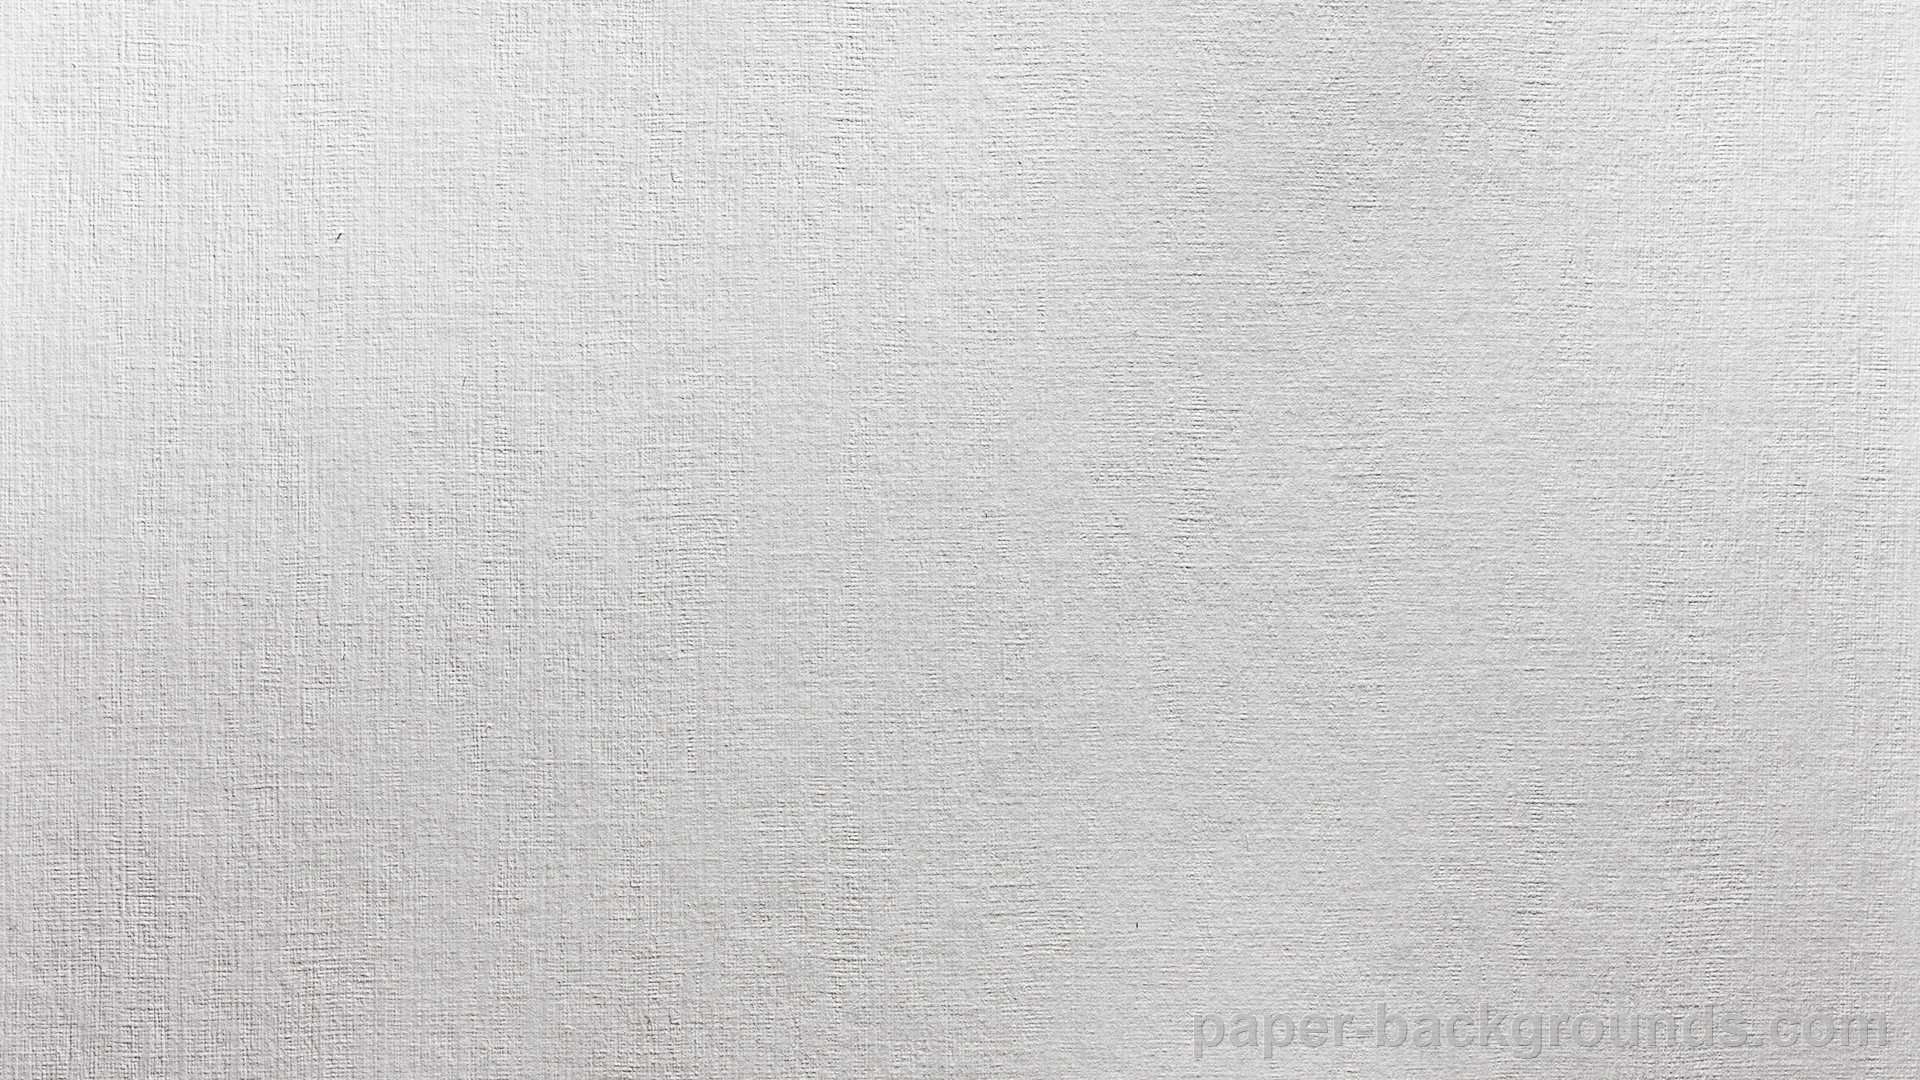 Natural Paper Background Texture HD Paper Backgrounds 1920x1080